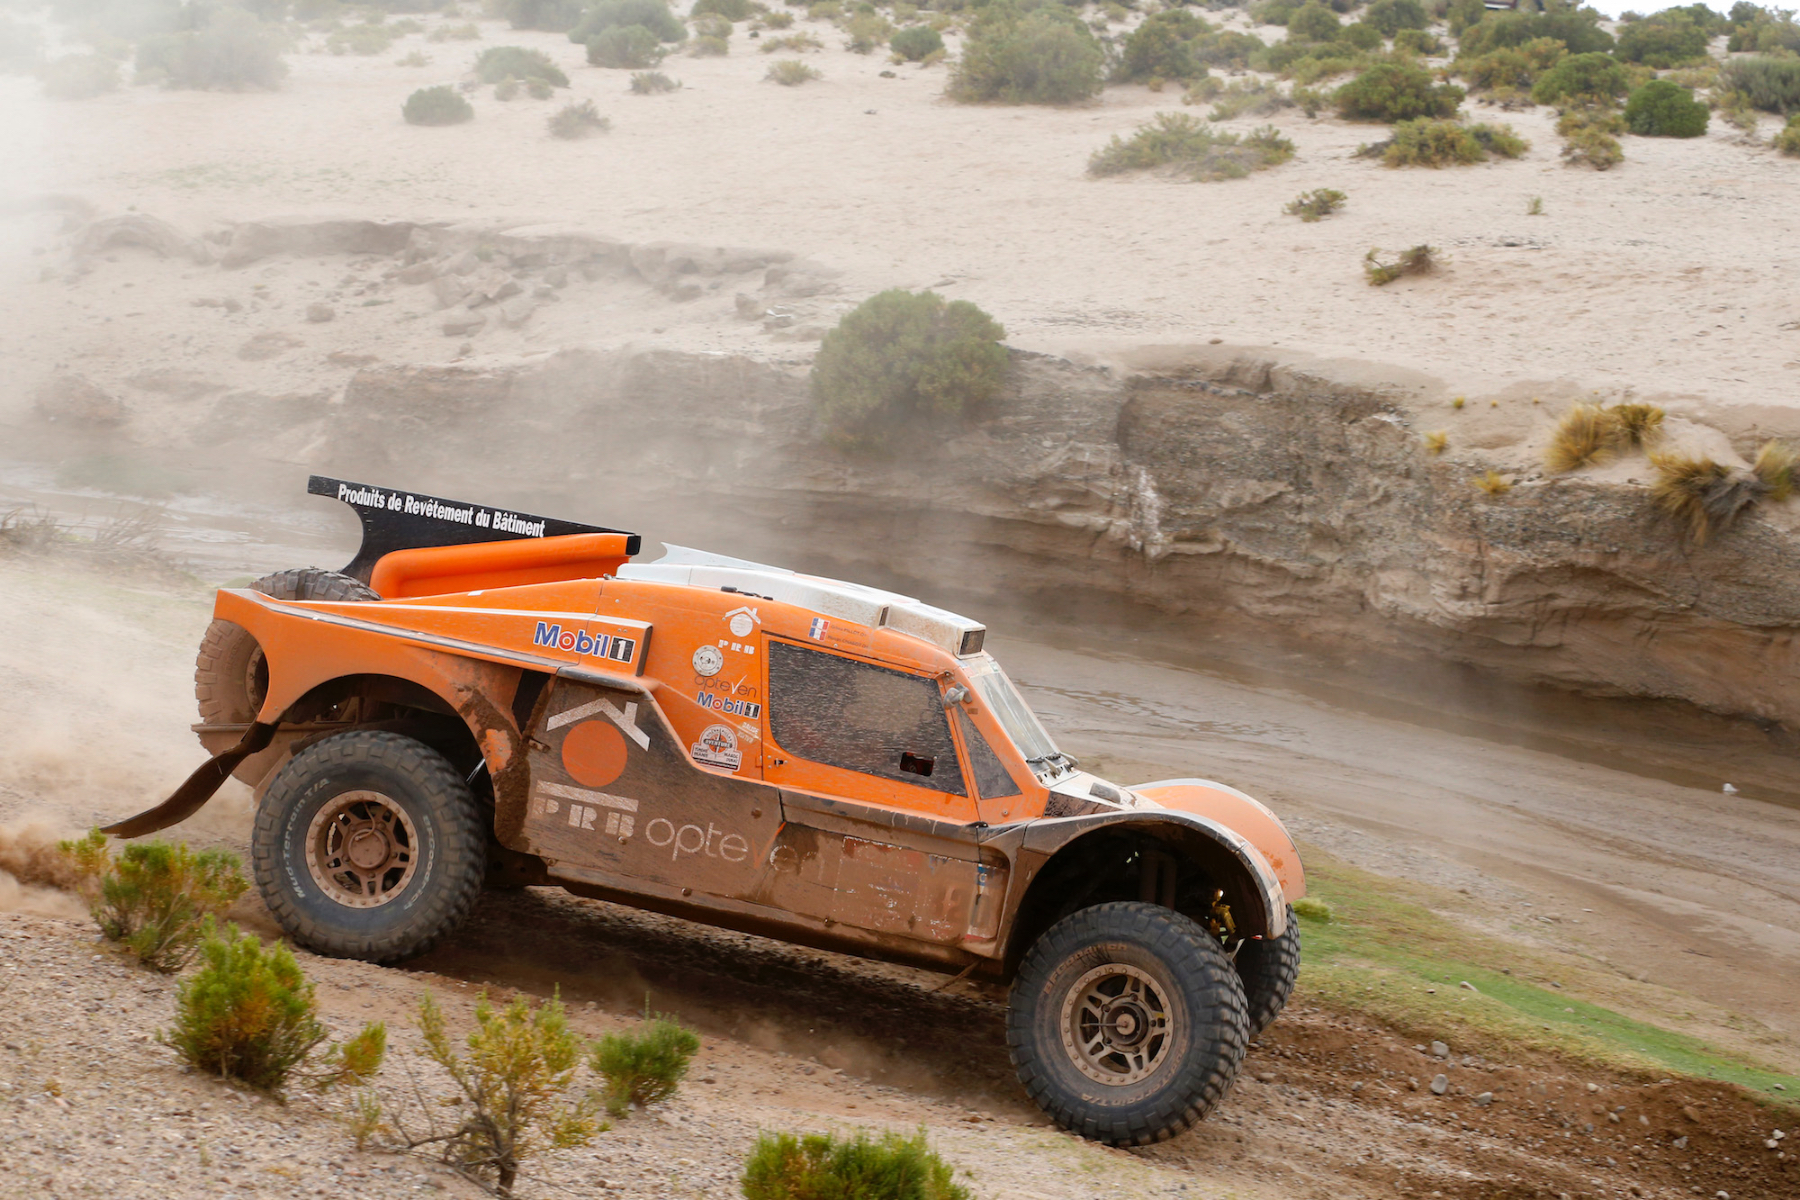 320 CHABOT Ronan (Fra) PILLOT Gilles (Fra) Smg action during the Dakar 2015 Argentina Bolivia Chile, Car Marathon Stage 7a / Auto Etape Marathon 7a, Iquique to Uyuni on January 10th 2015 at Iquique, Chile. Photo Frederic Le Floch / DPPI